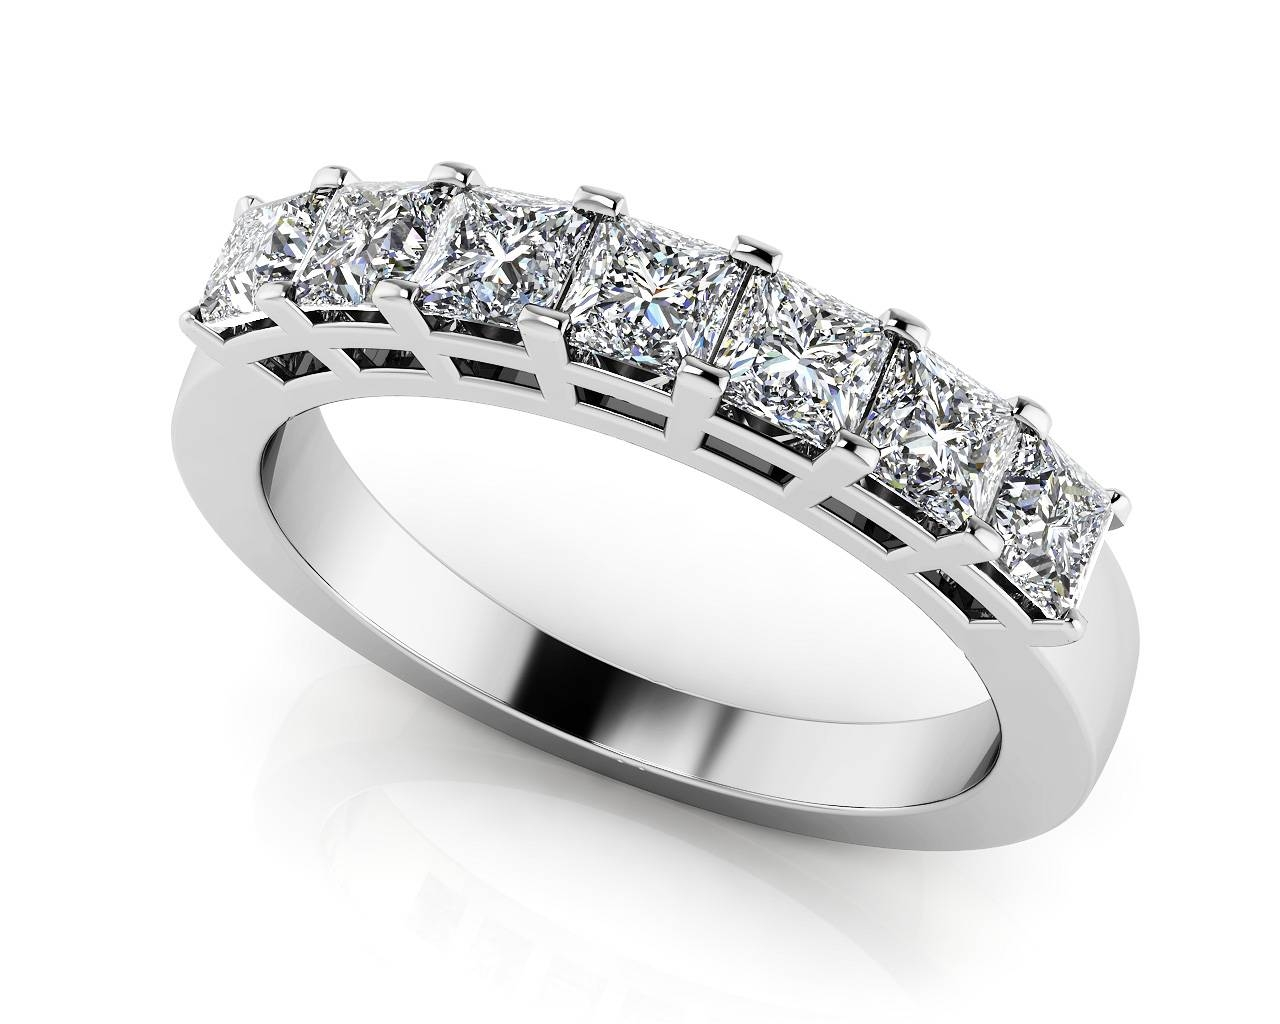 Design Your Own Diamond Anniversary Ring & Eternity Ring With Regard To 2017 Diamond Anniversary Rings (View 7 of 25)